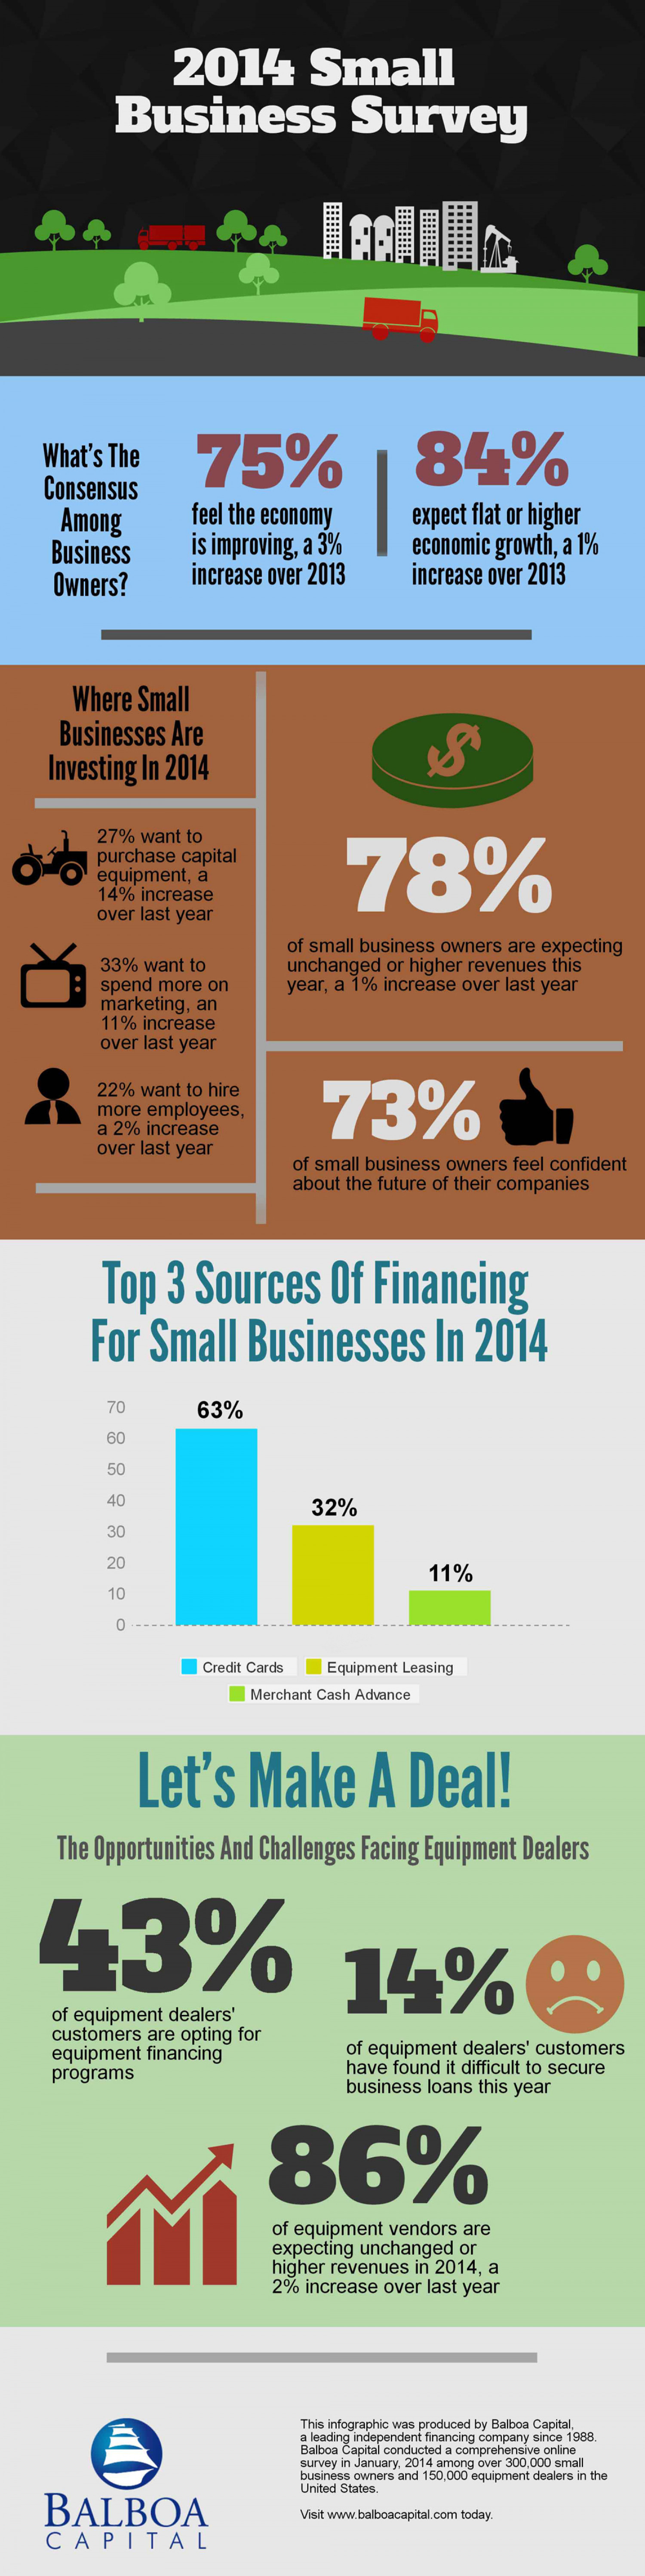 2014 Q1 Small Business Survey Infographic